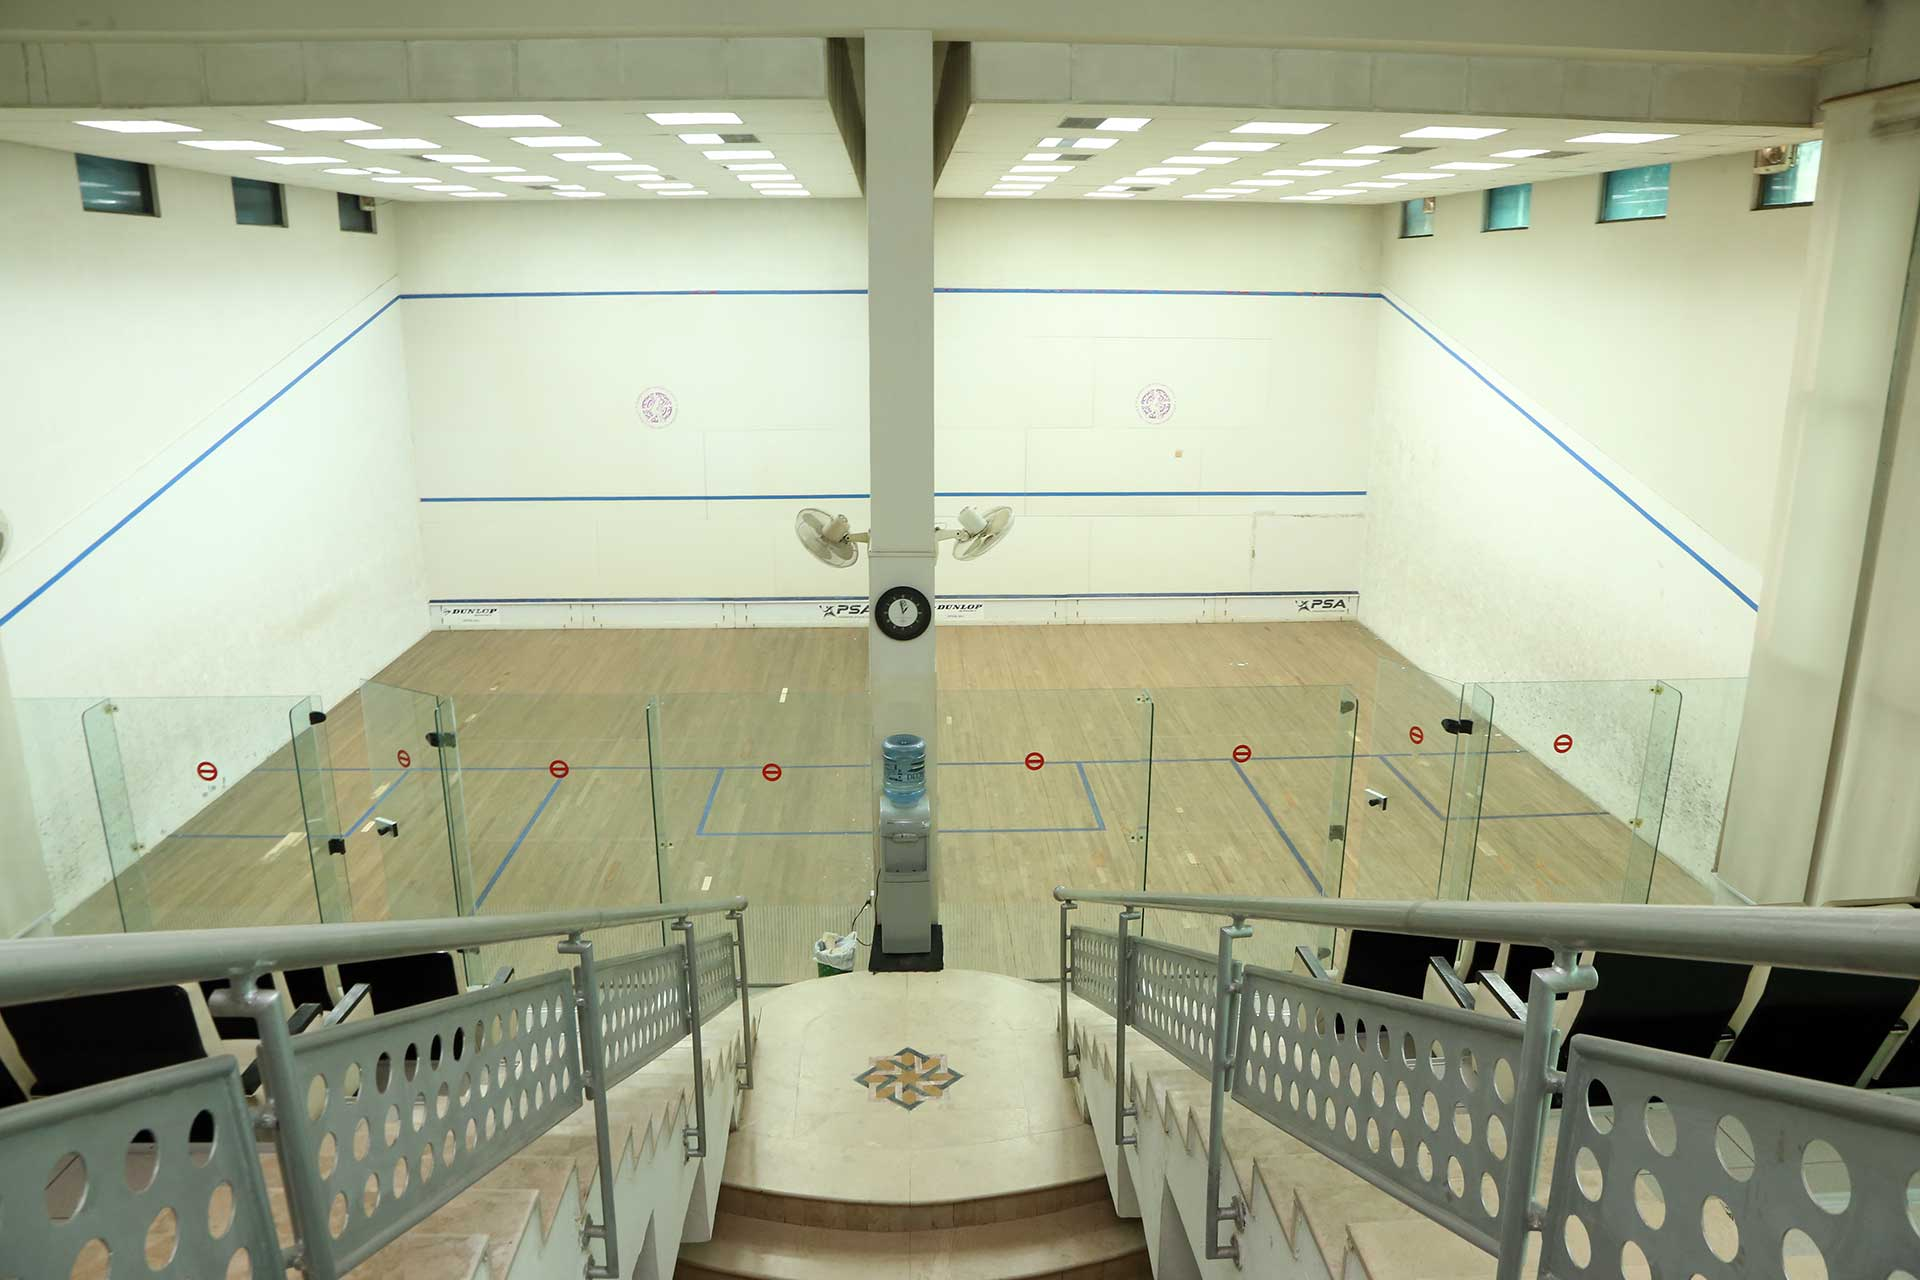 Safari Club Squash Court